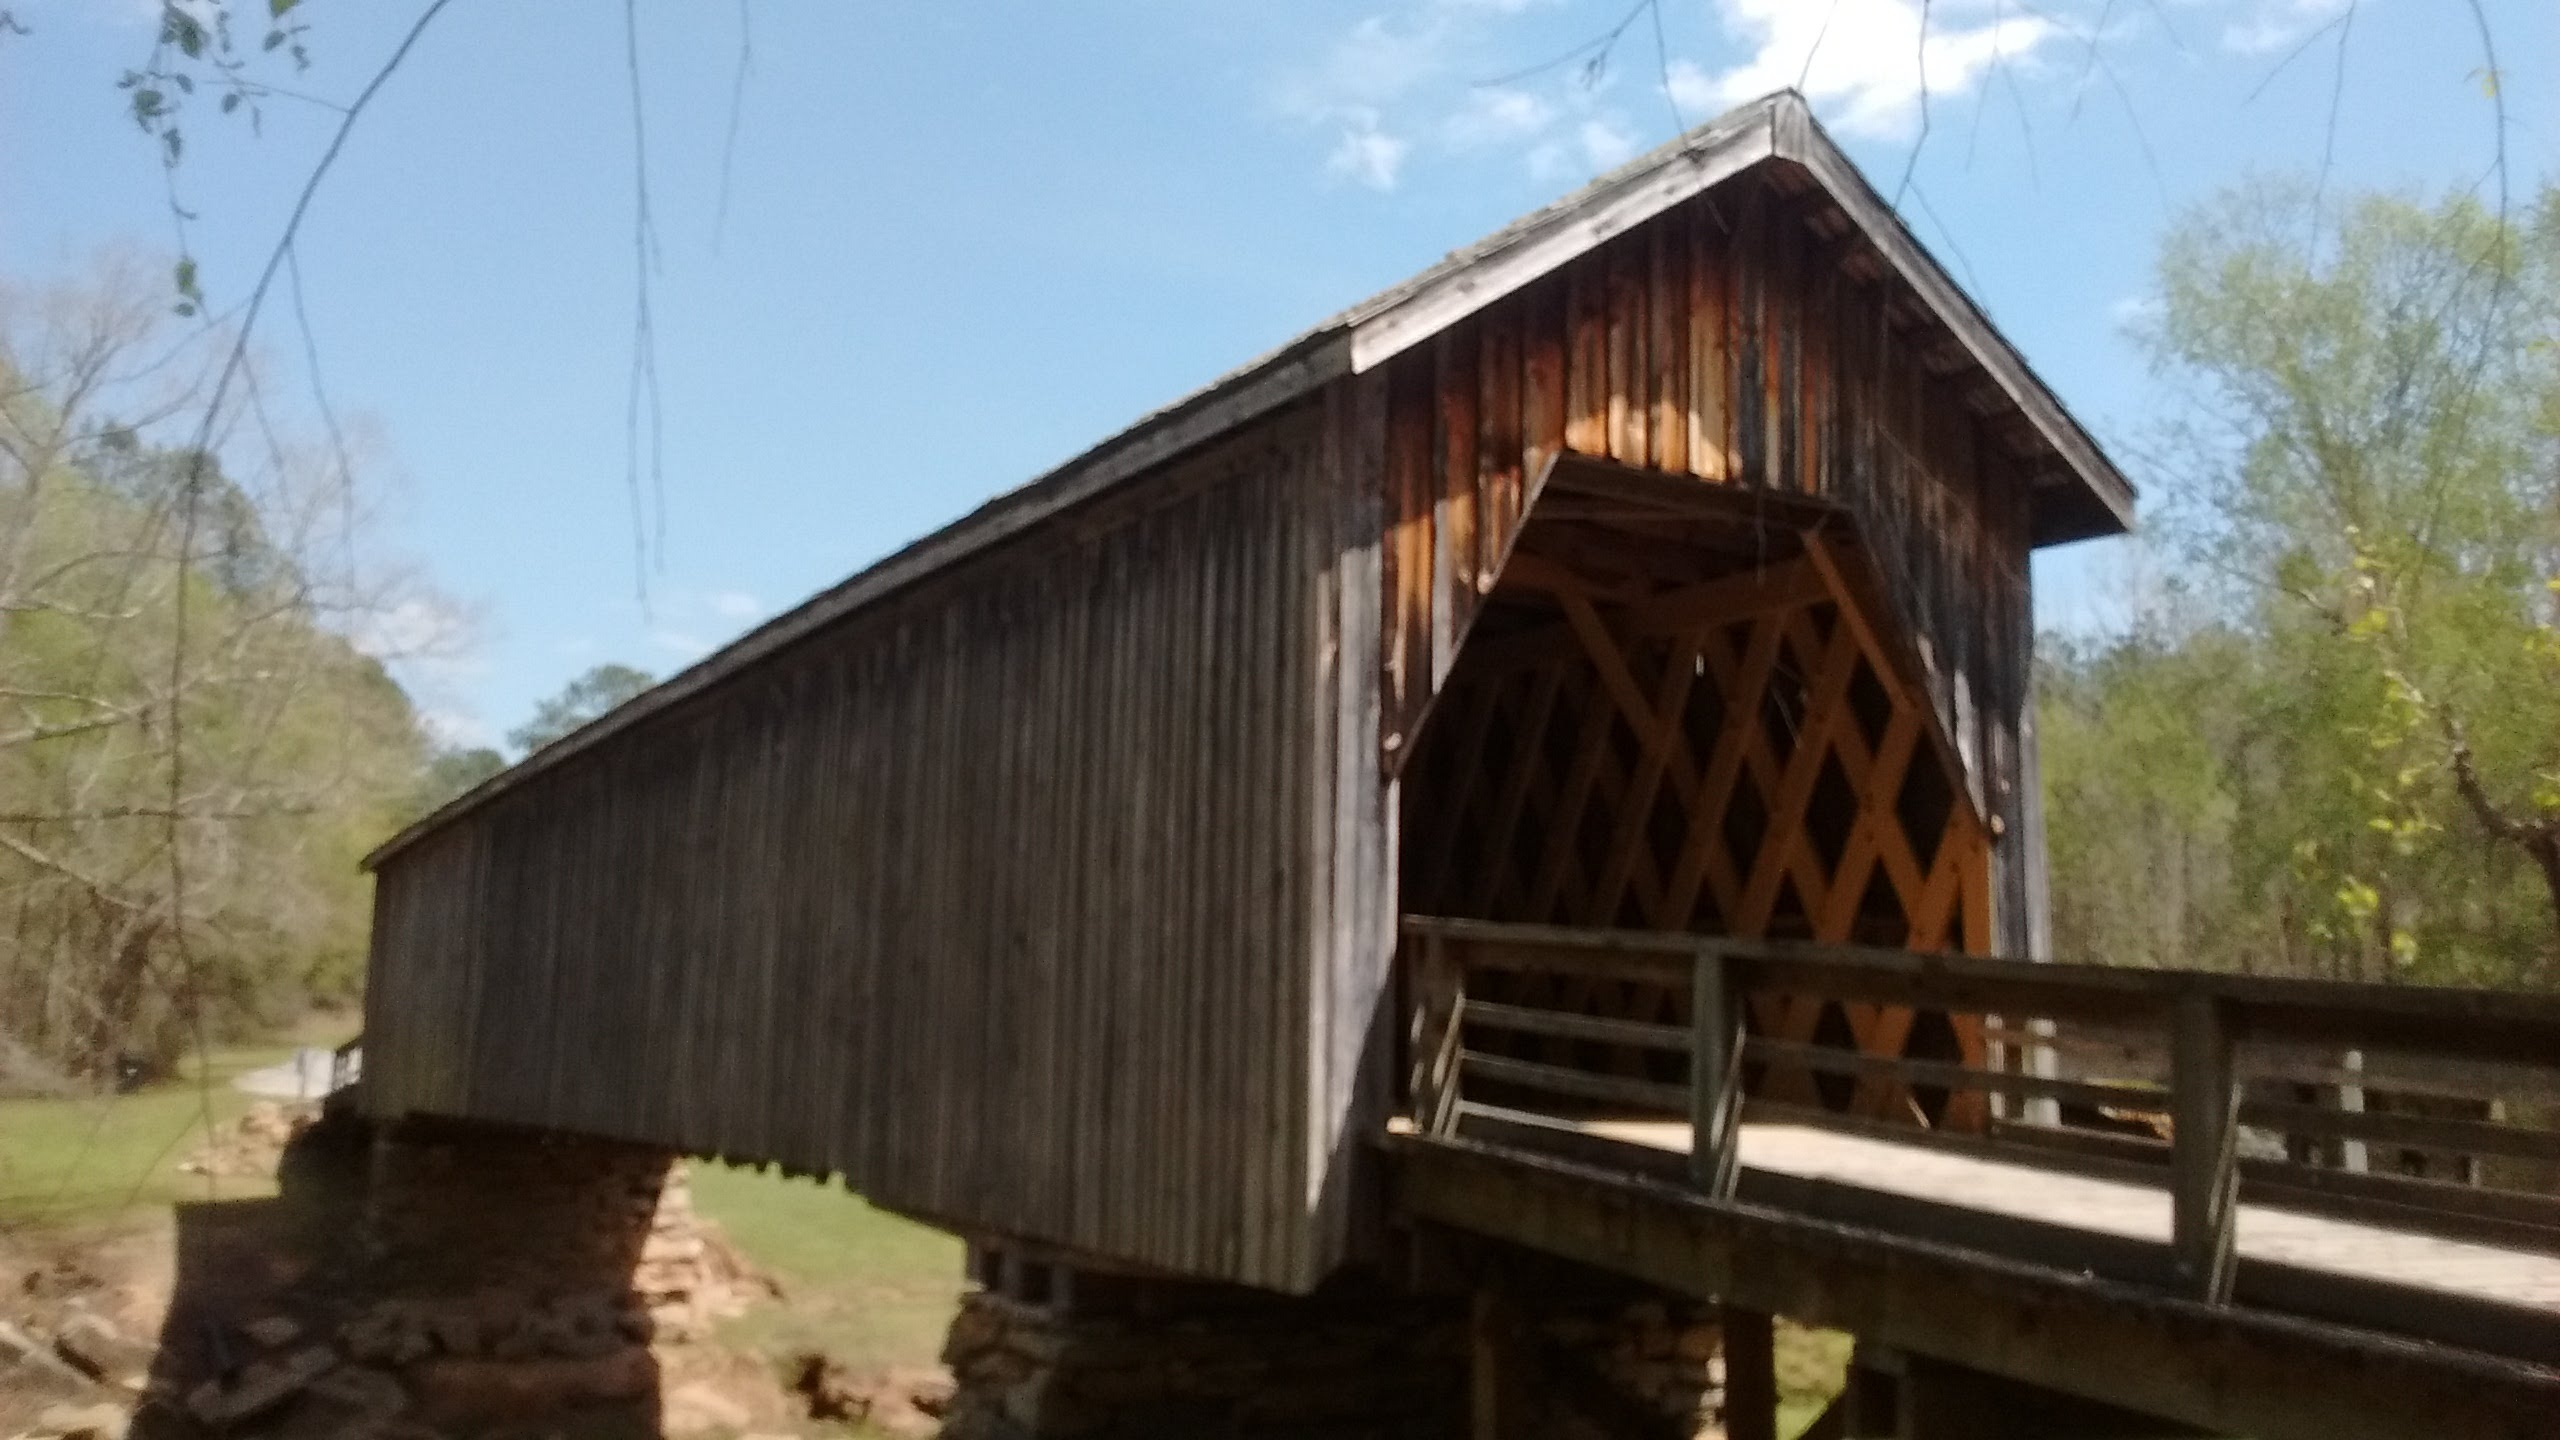 Auchumpkee Creek Bridge